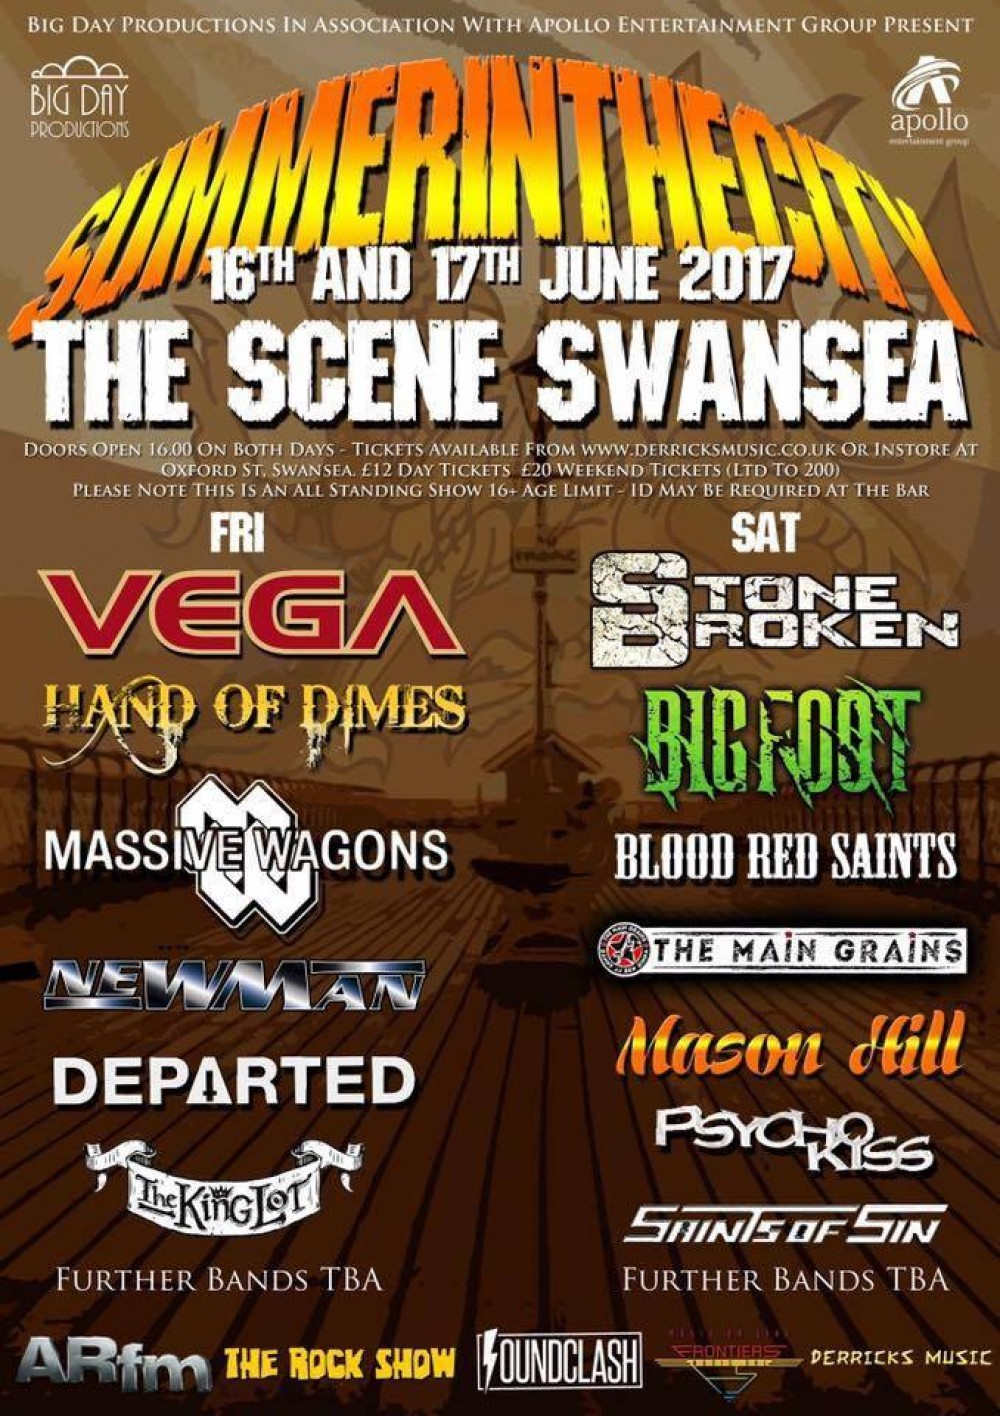 Summer In The City - The Scene in Swansea - 16th & 17th June 2017